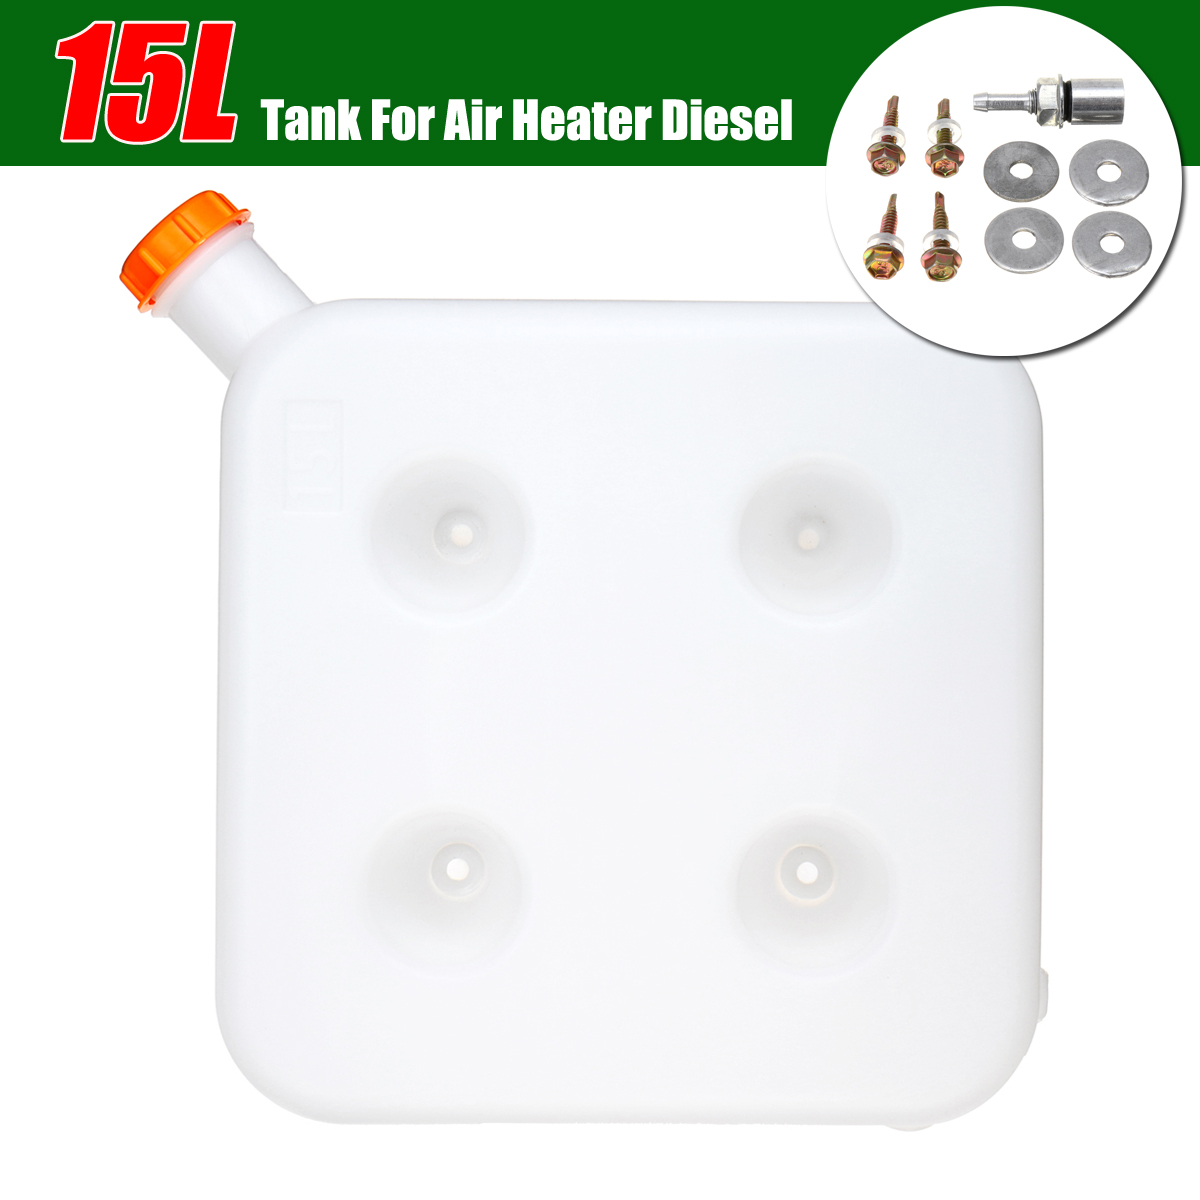 Special Section Car Heating Accessories Parking Heater 15l Plastic Fuel Oil Gasoline Tank For Motorhome Trucks Diesels Air Heater